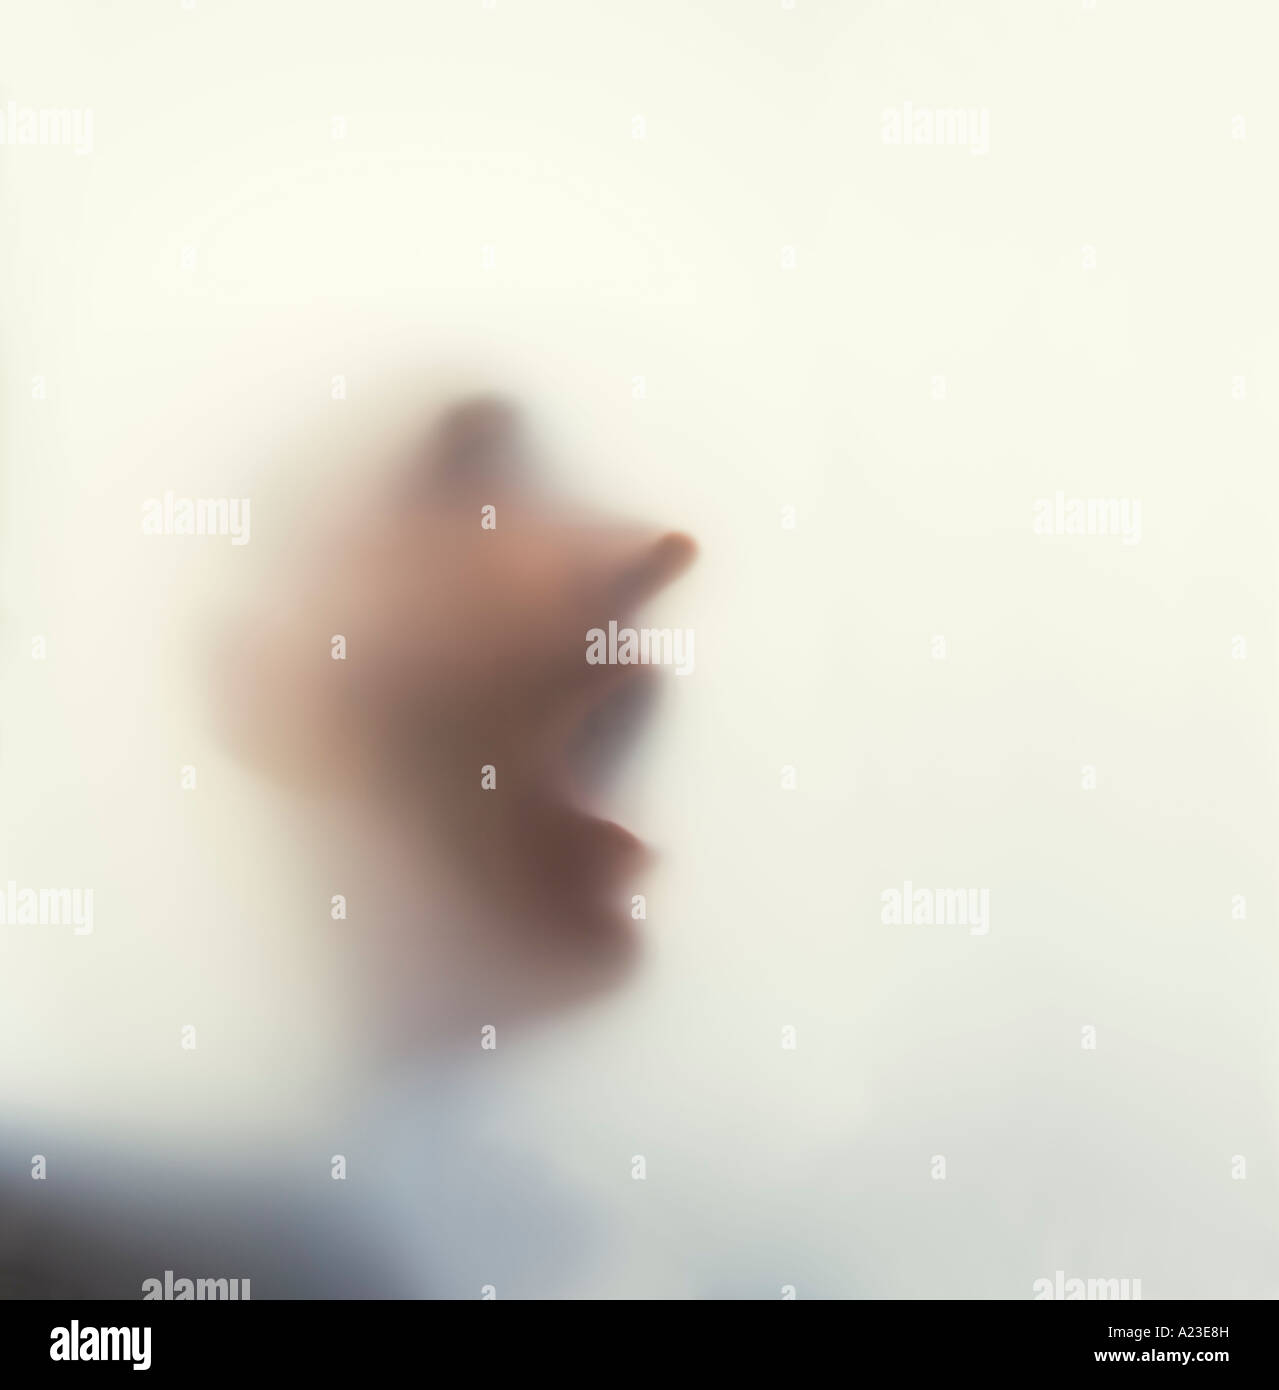 Man with face against frosted glass - Stock Image